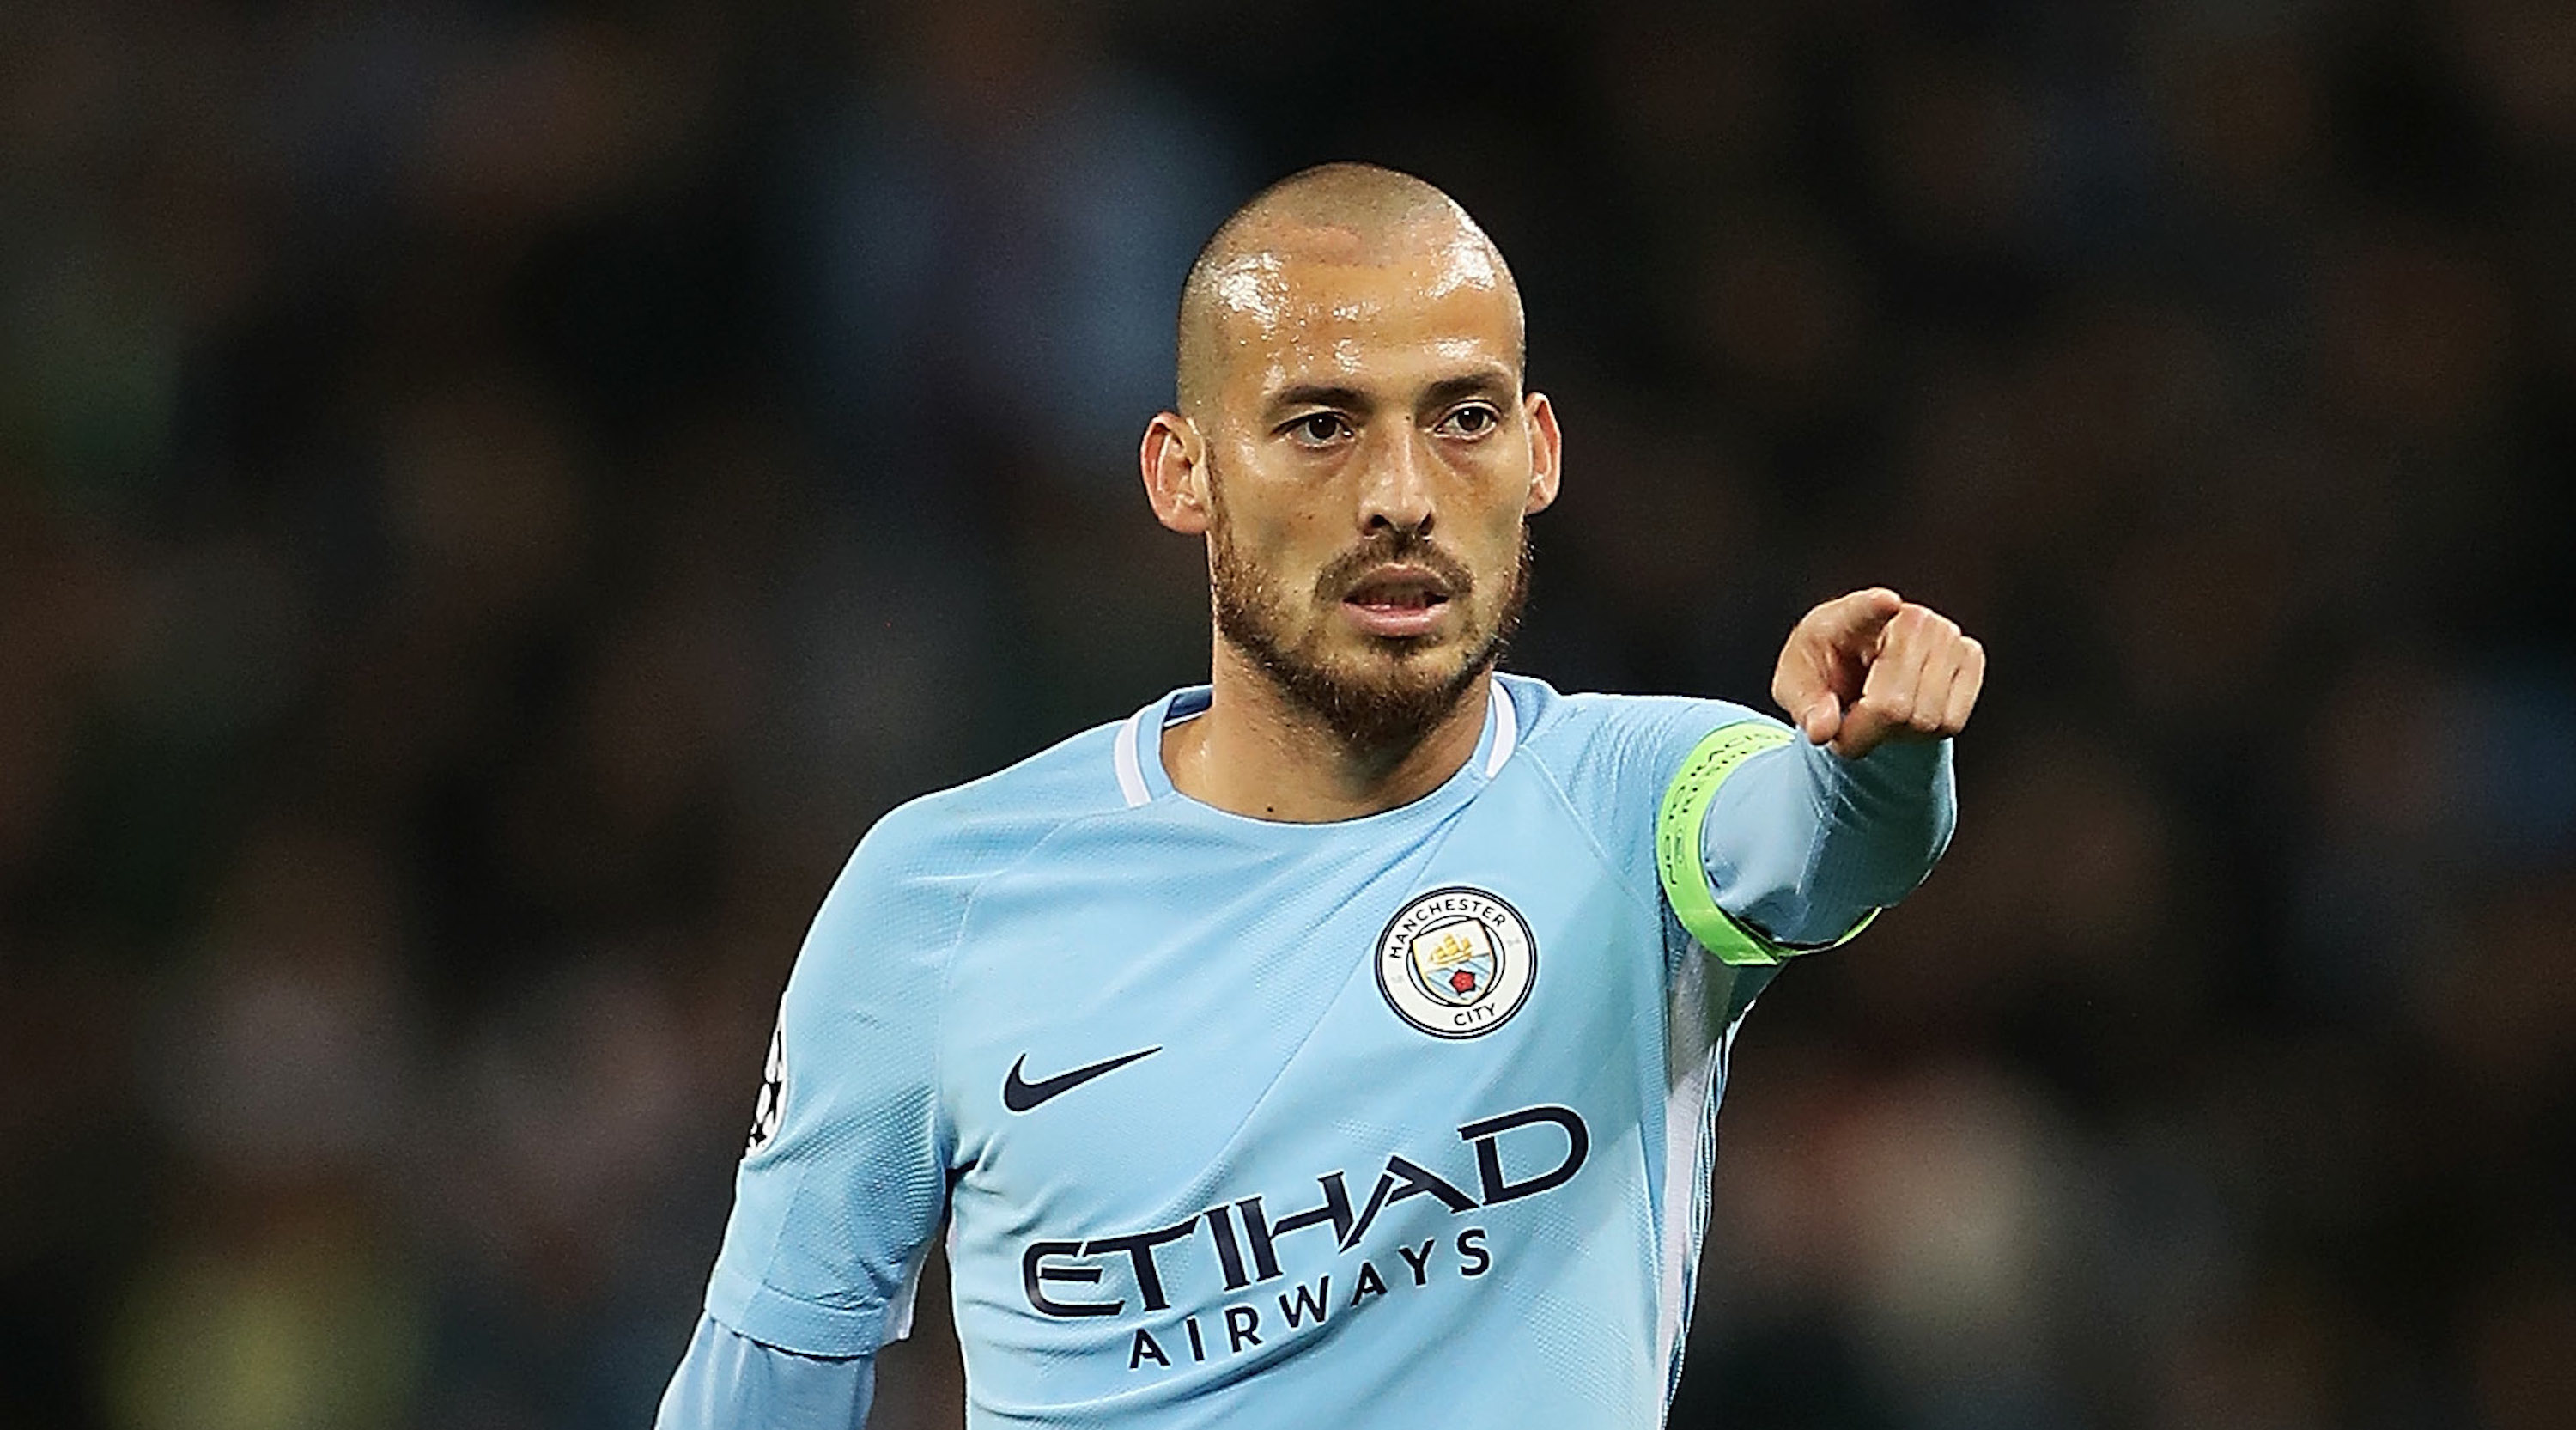 MANCHESTER, ENGLAND - SEPTEMBER 26: David Silva of Manchester City in action during the UEFA Champions League group F match between Manchester City and Shakhtar Donetsk at Etihad Stadium on September 26, 2017 in Manchester, United Kingdom. (Photo by Matthew Lewis/Getty Images)